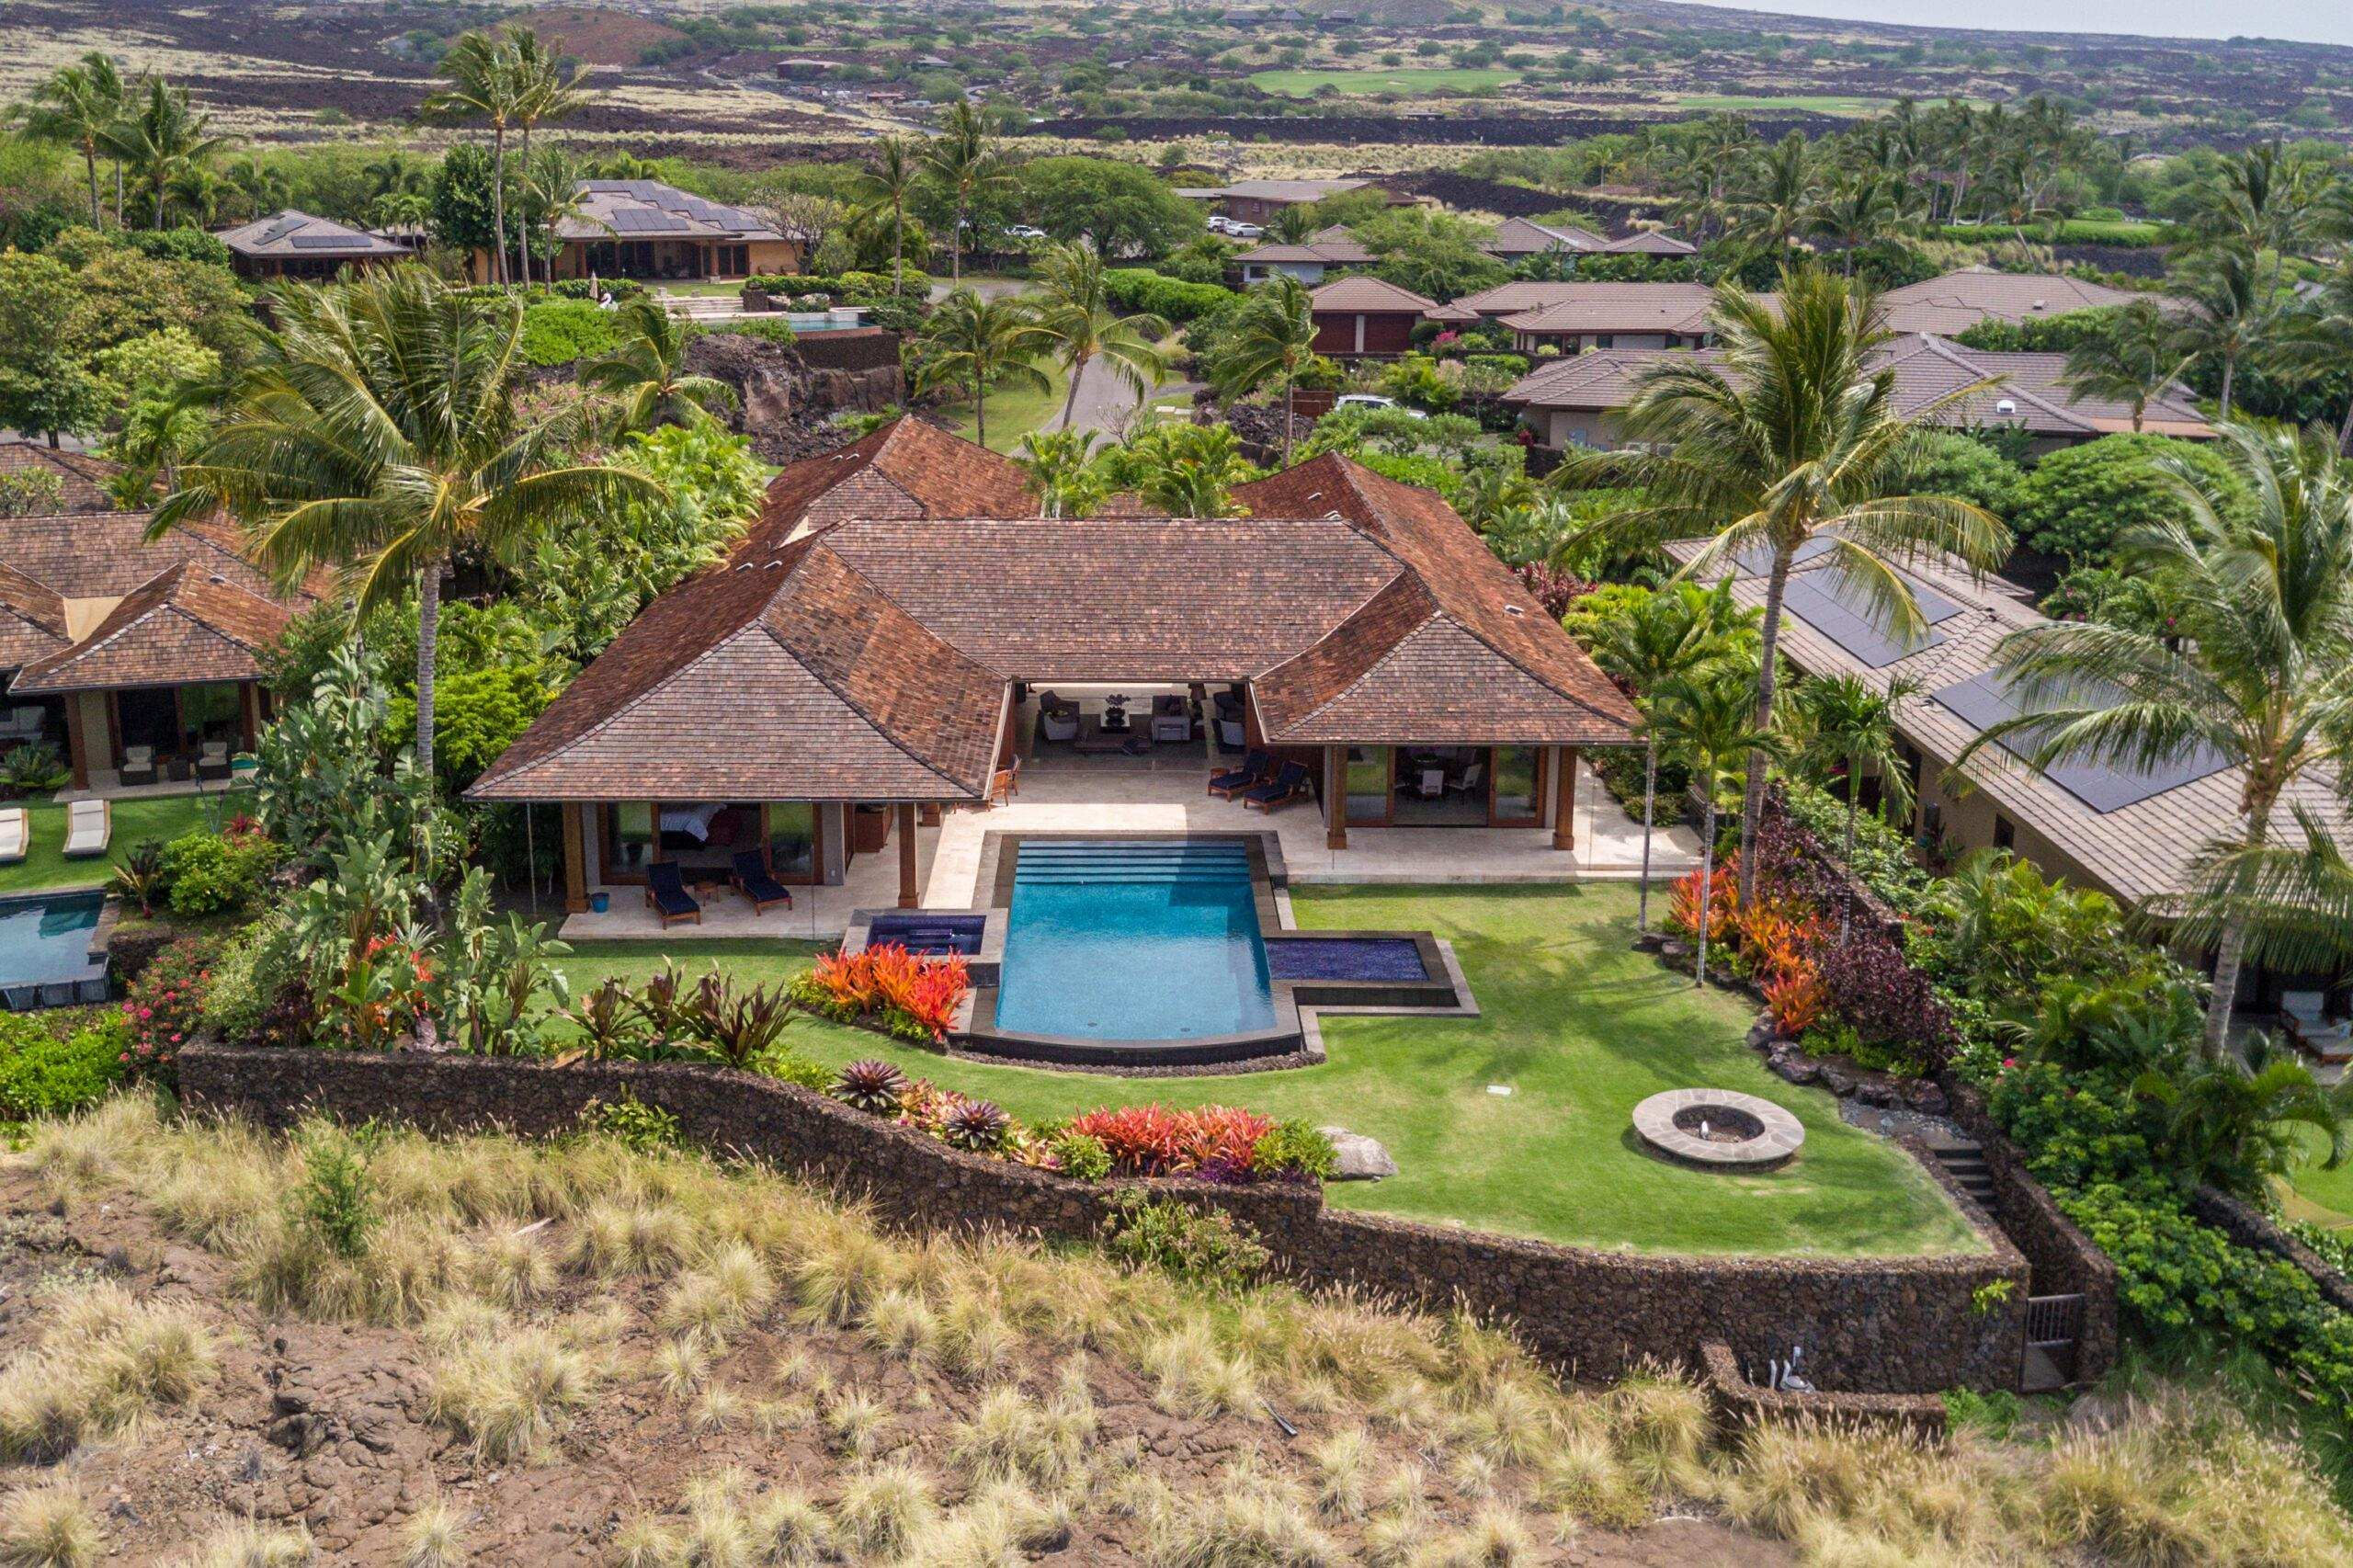 Where to stay in Hawaii on the Big Island